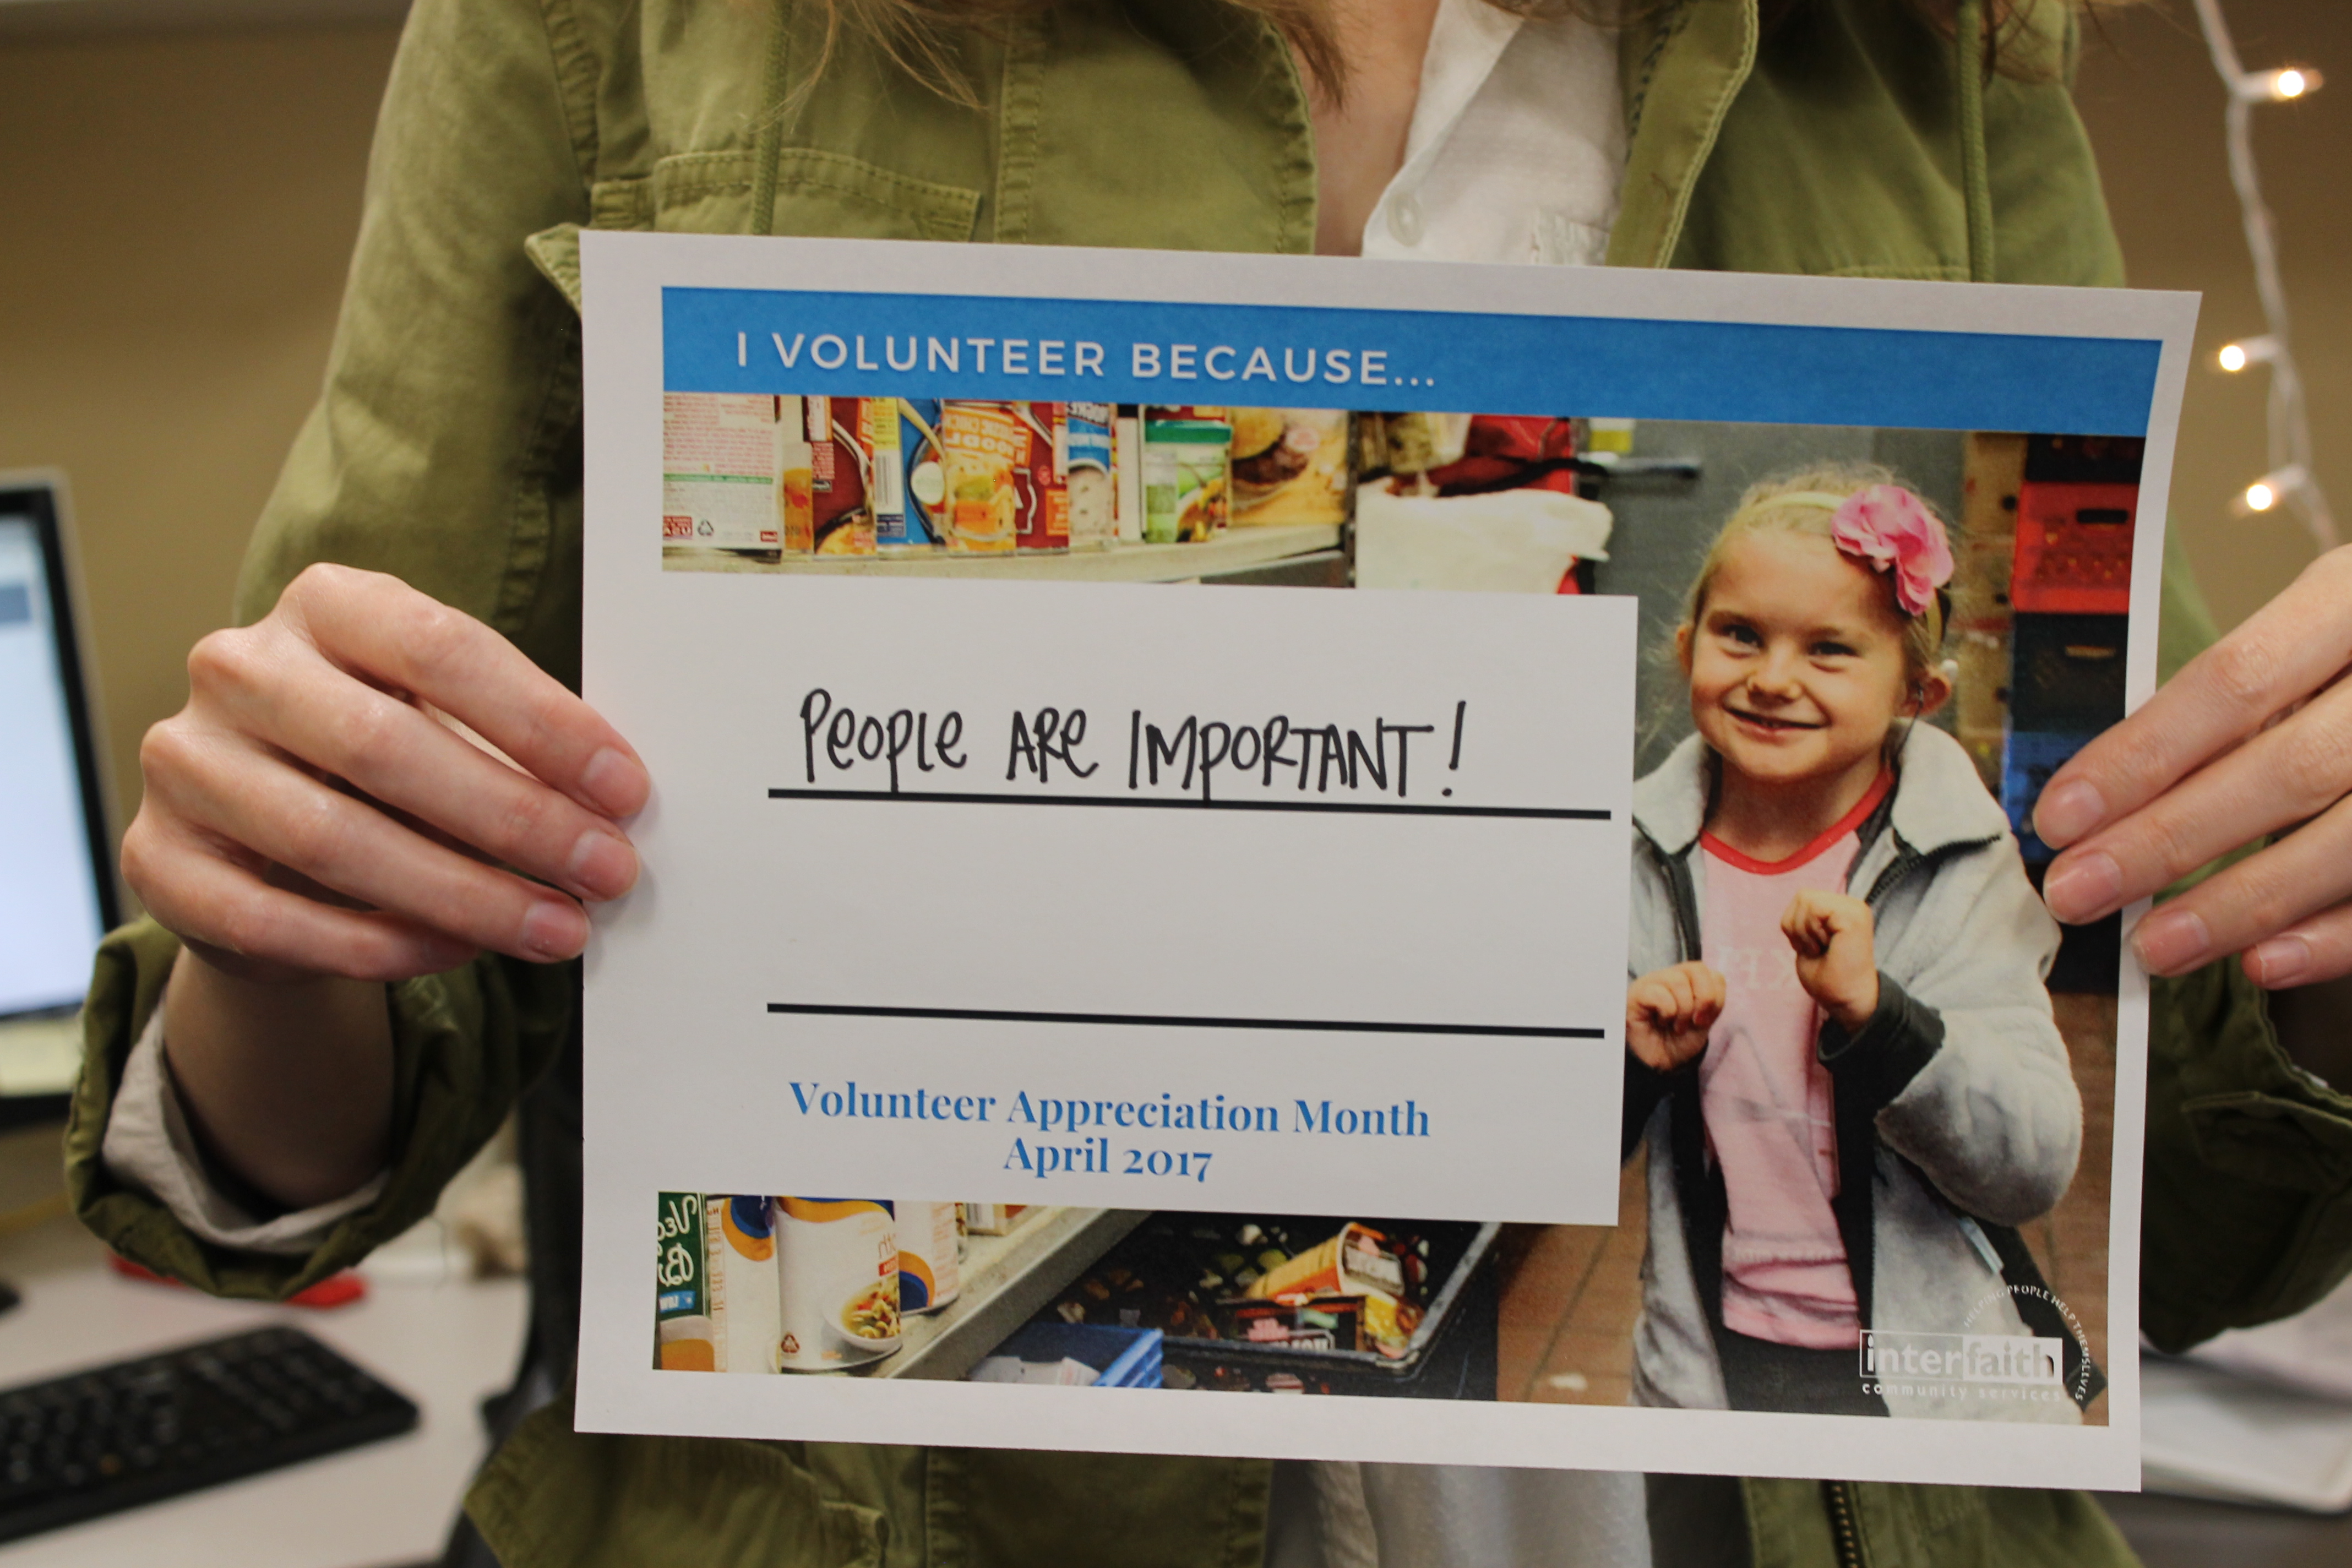 i volunteer because people are important volunteer appreciation month flier